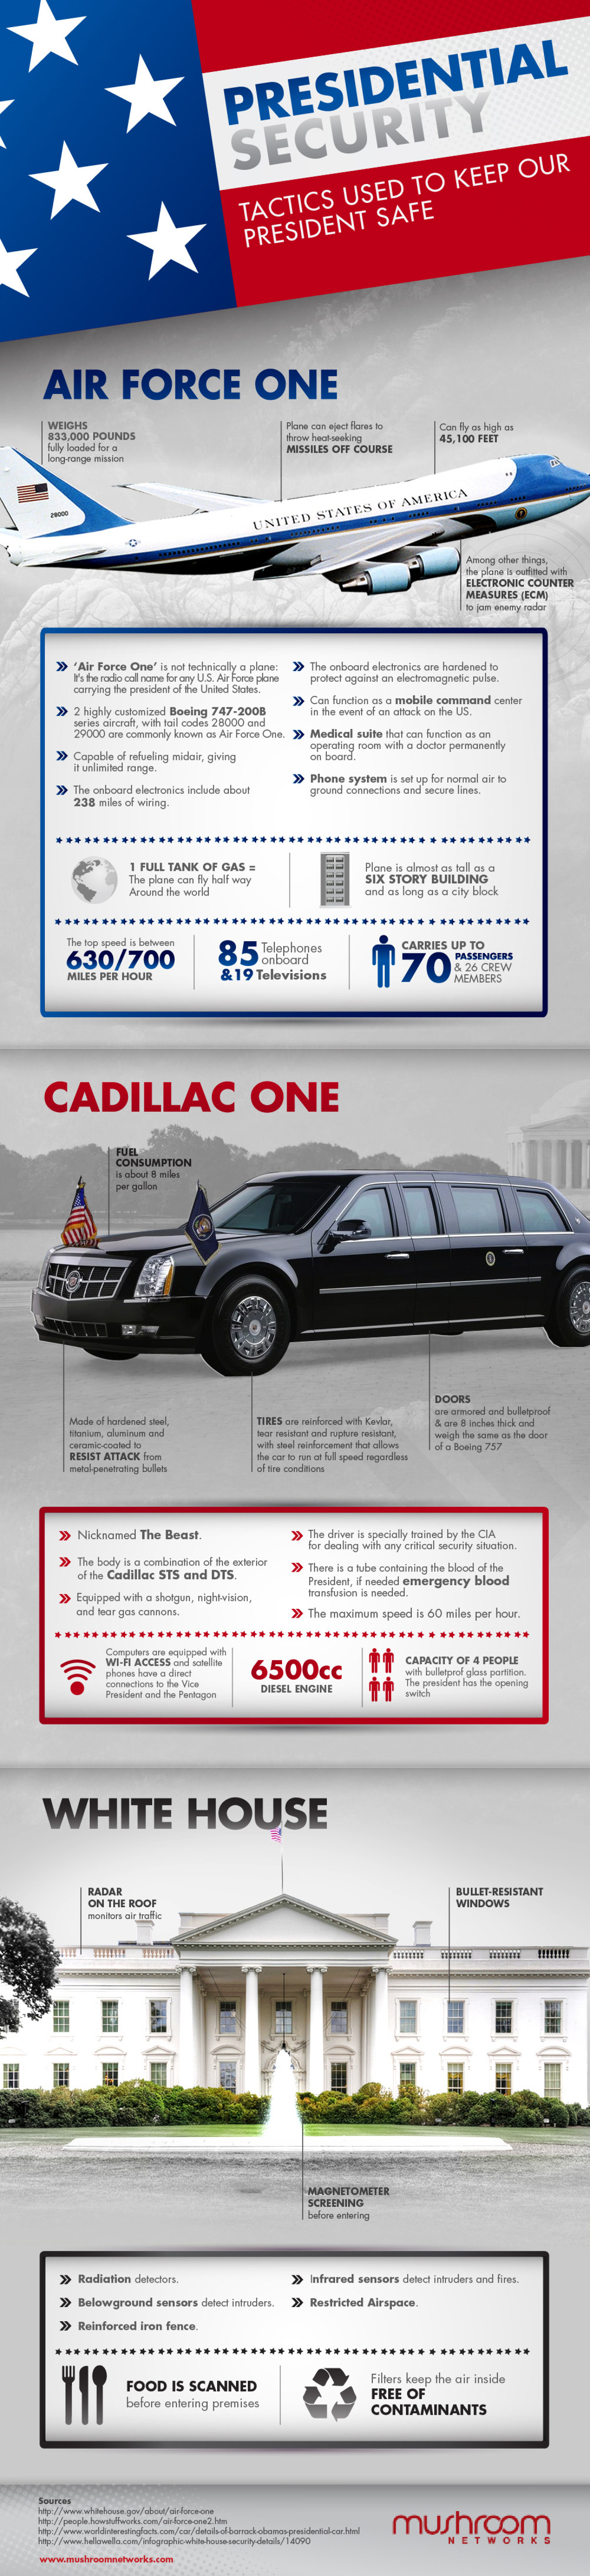 Presidential Security Infographic